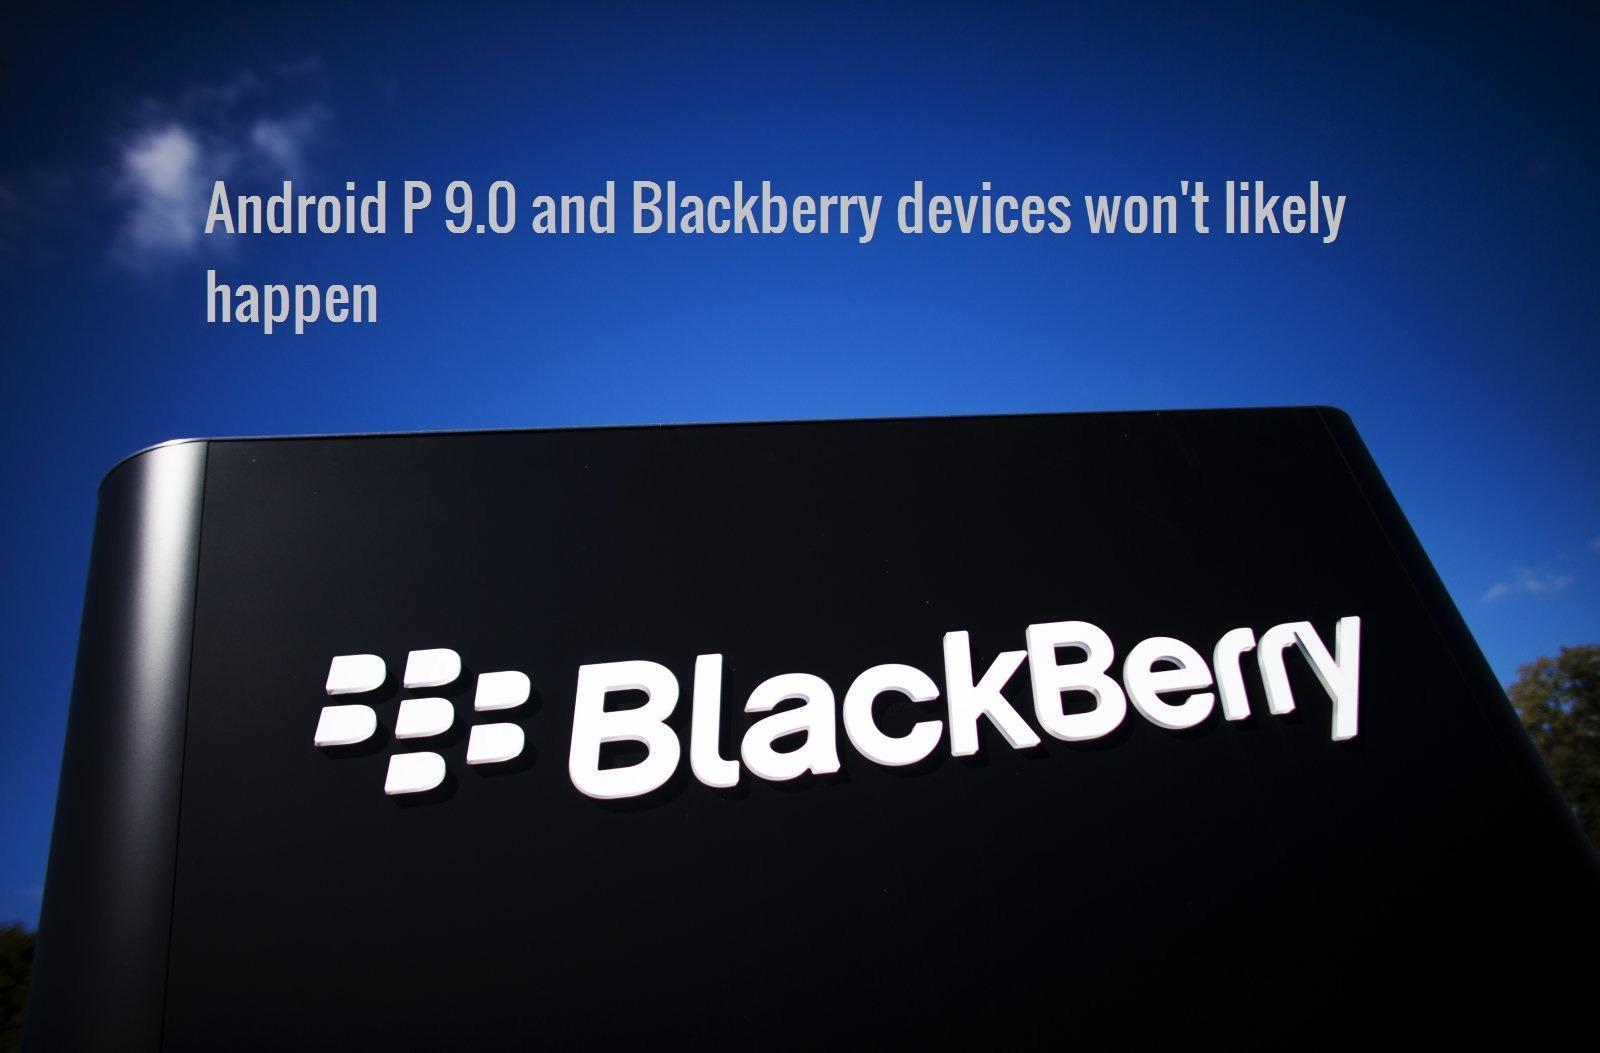 Blackberry devices getting Android P 9.0 update